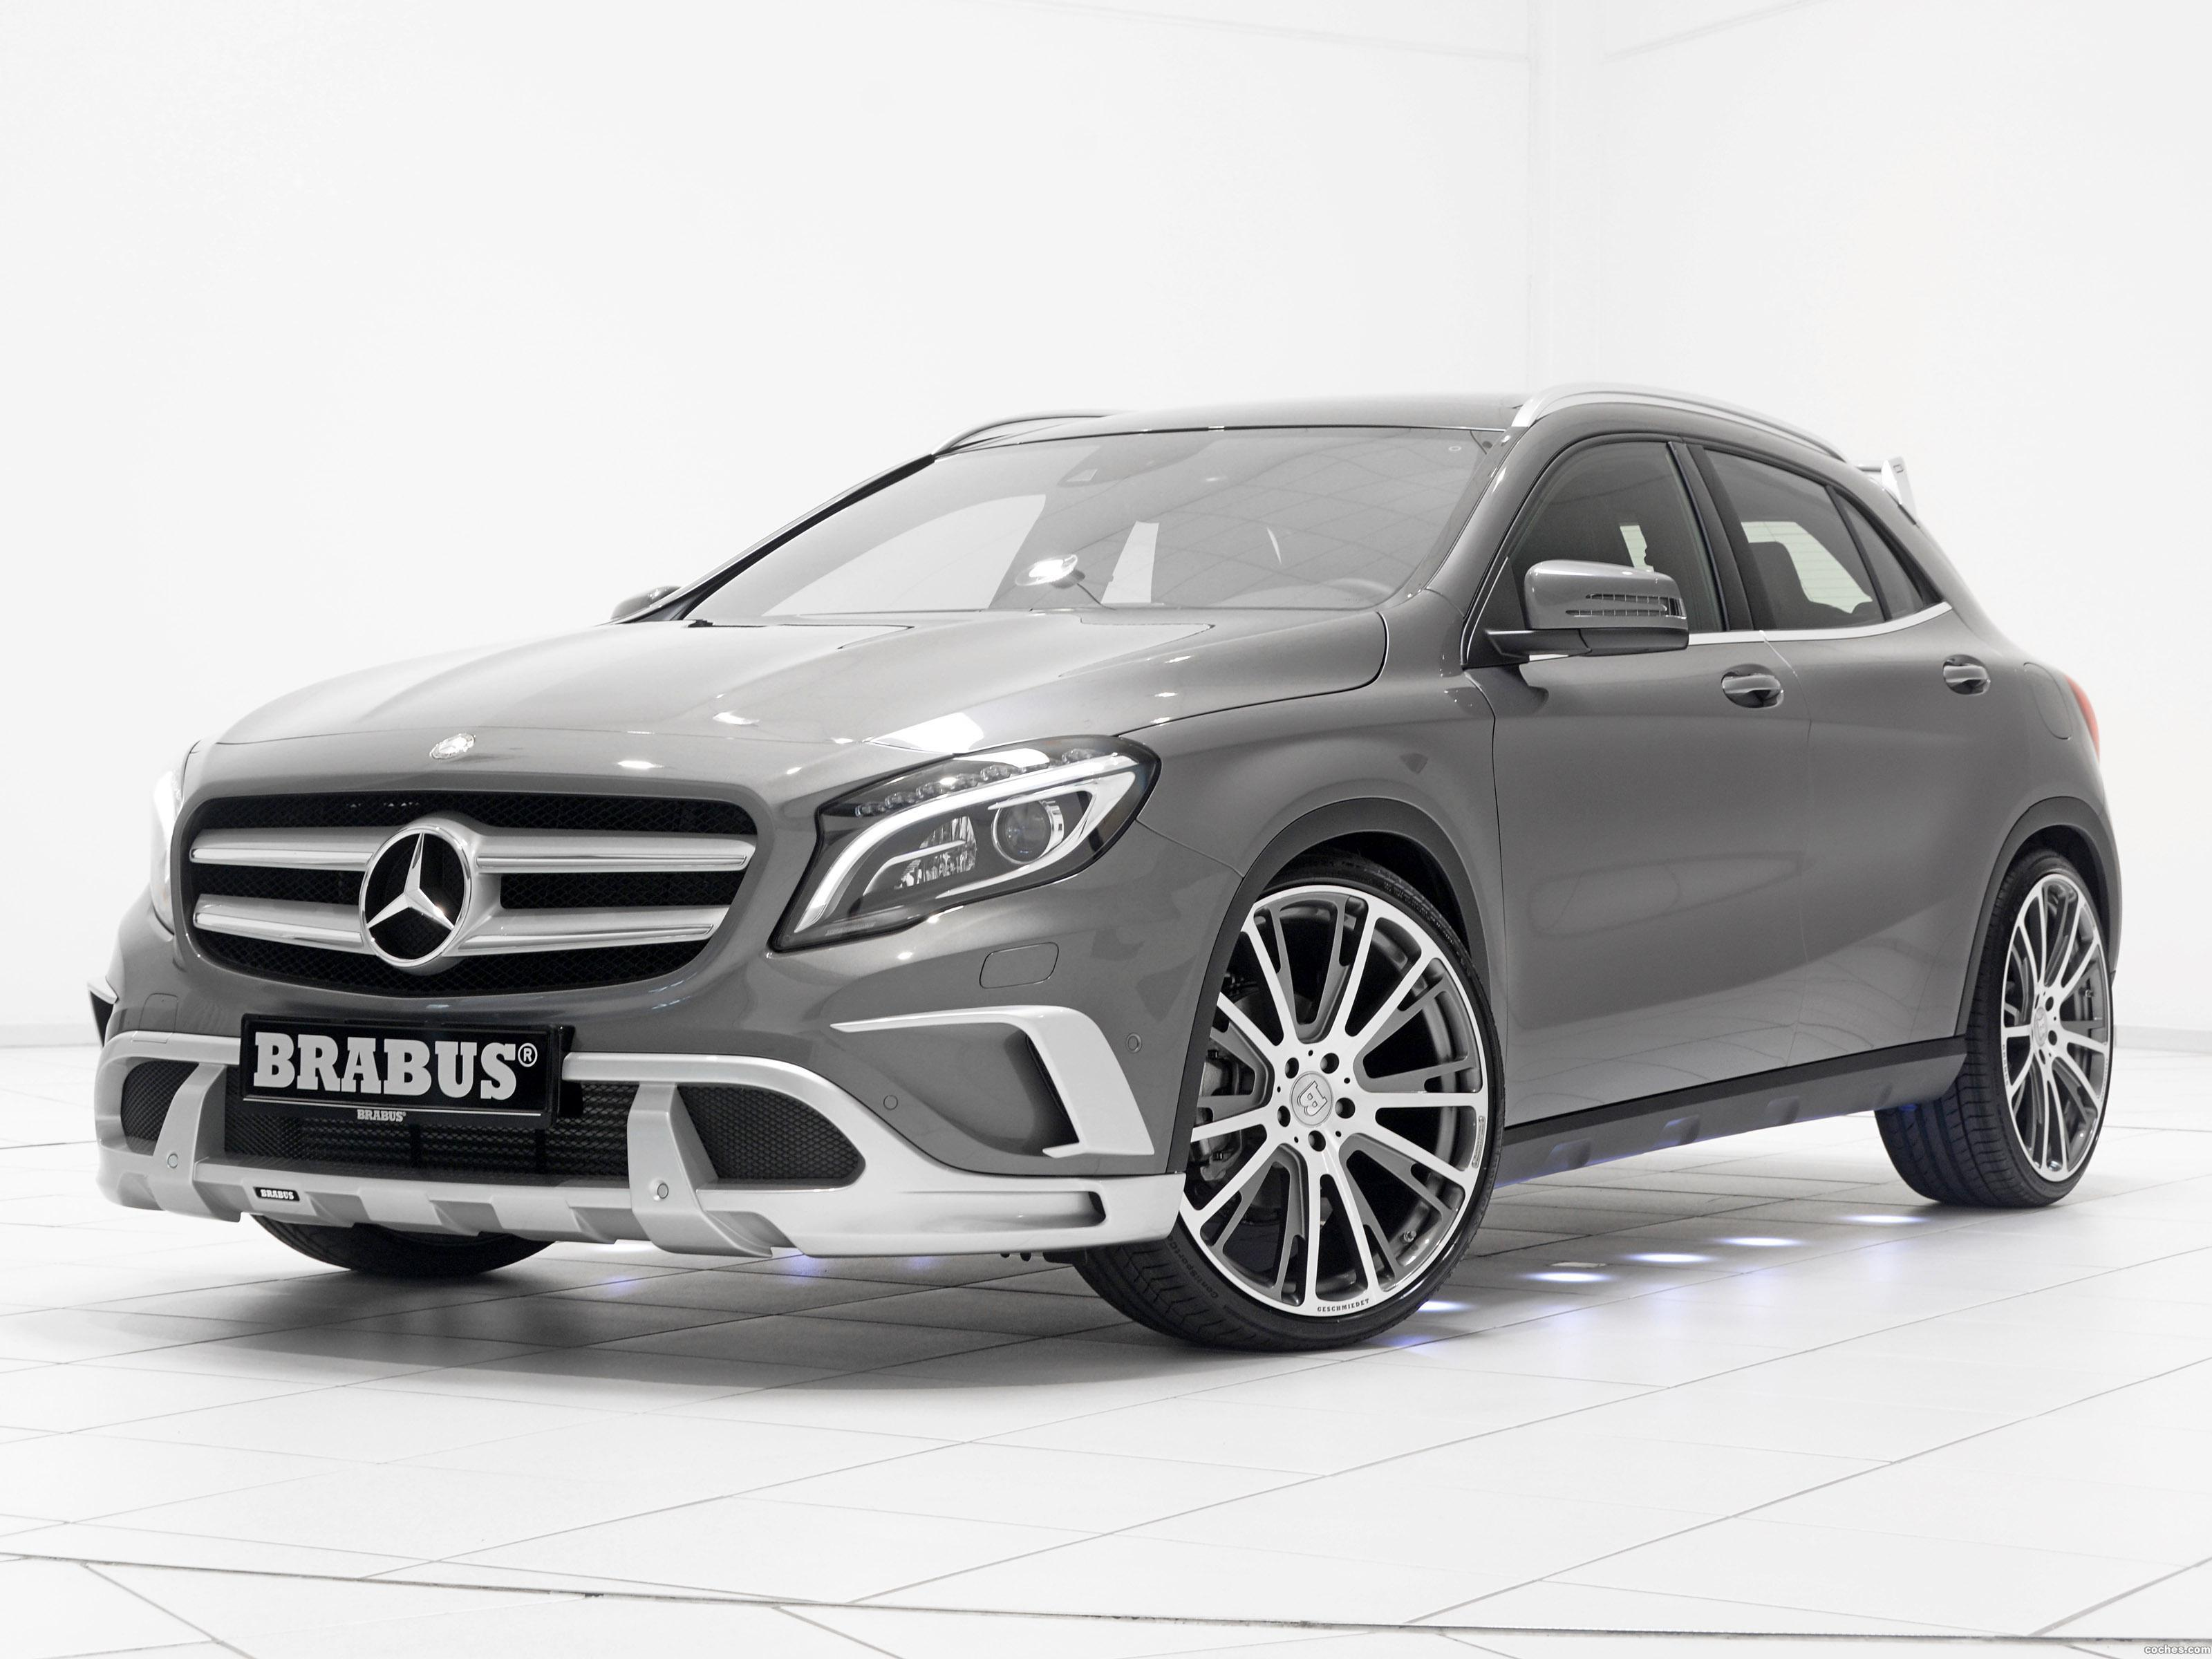 fotos de mercedes brabus clase gla 220 cdi x156 2014 foto 7. Black Bedroom Furniture Sets. Home Design Ideas